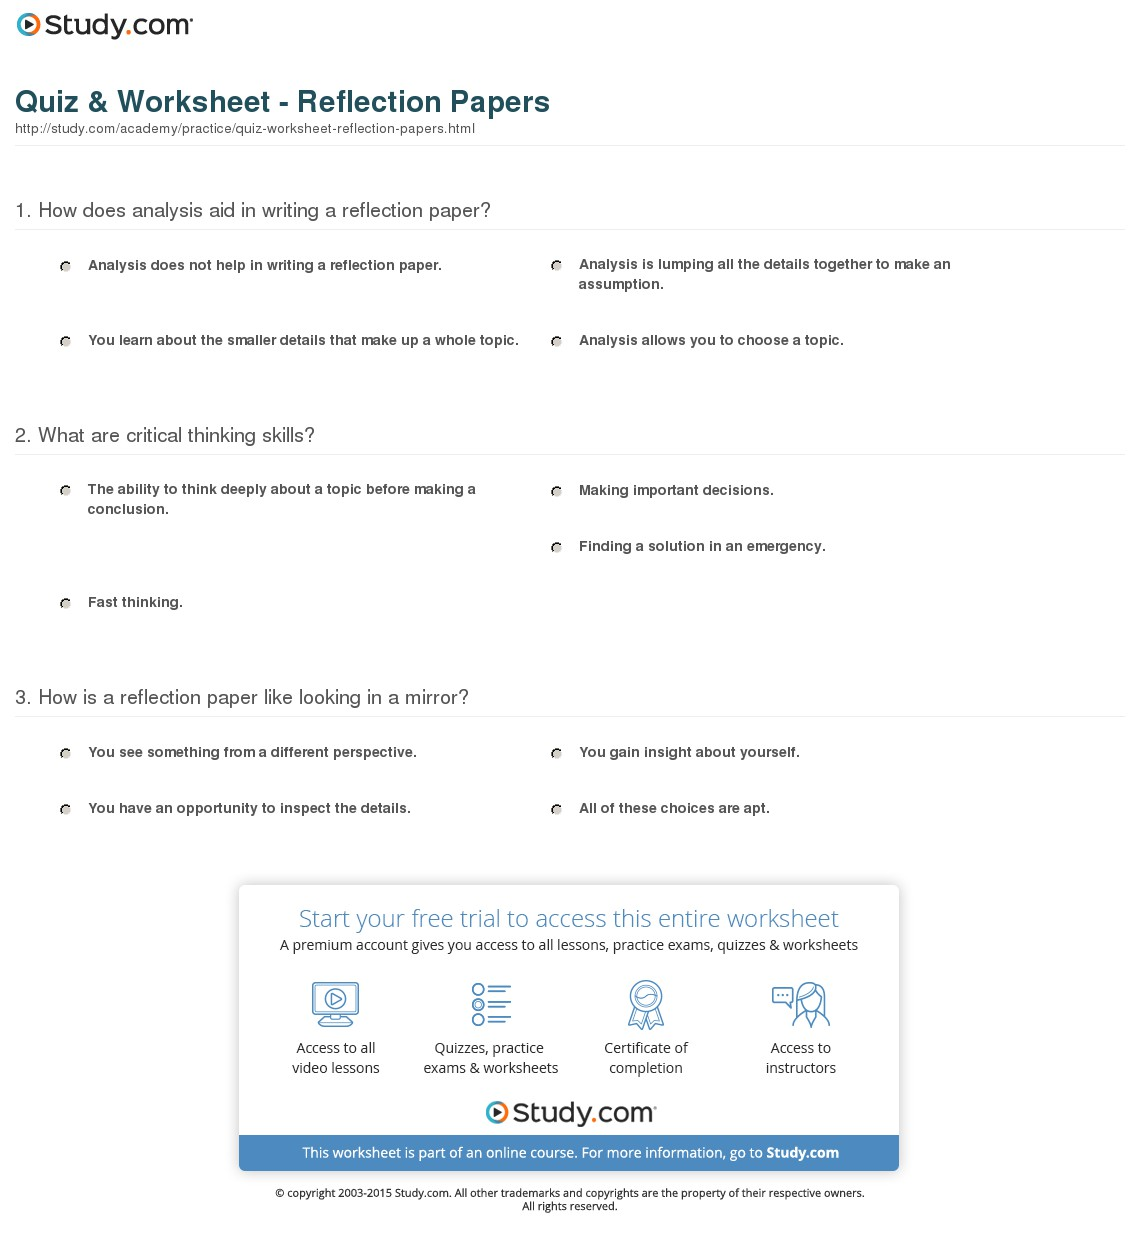 003 Research Paper Parts Of Quiz Worksheet Reflection Impressive A Full